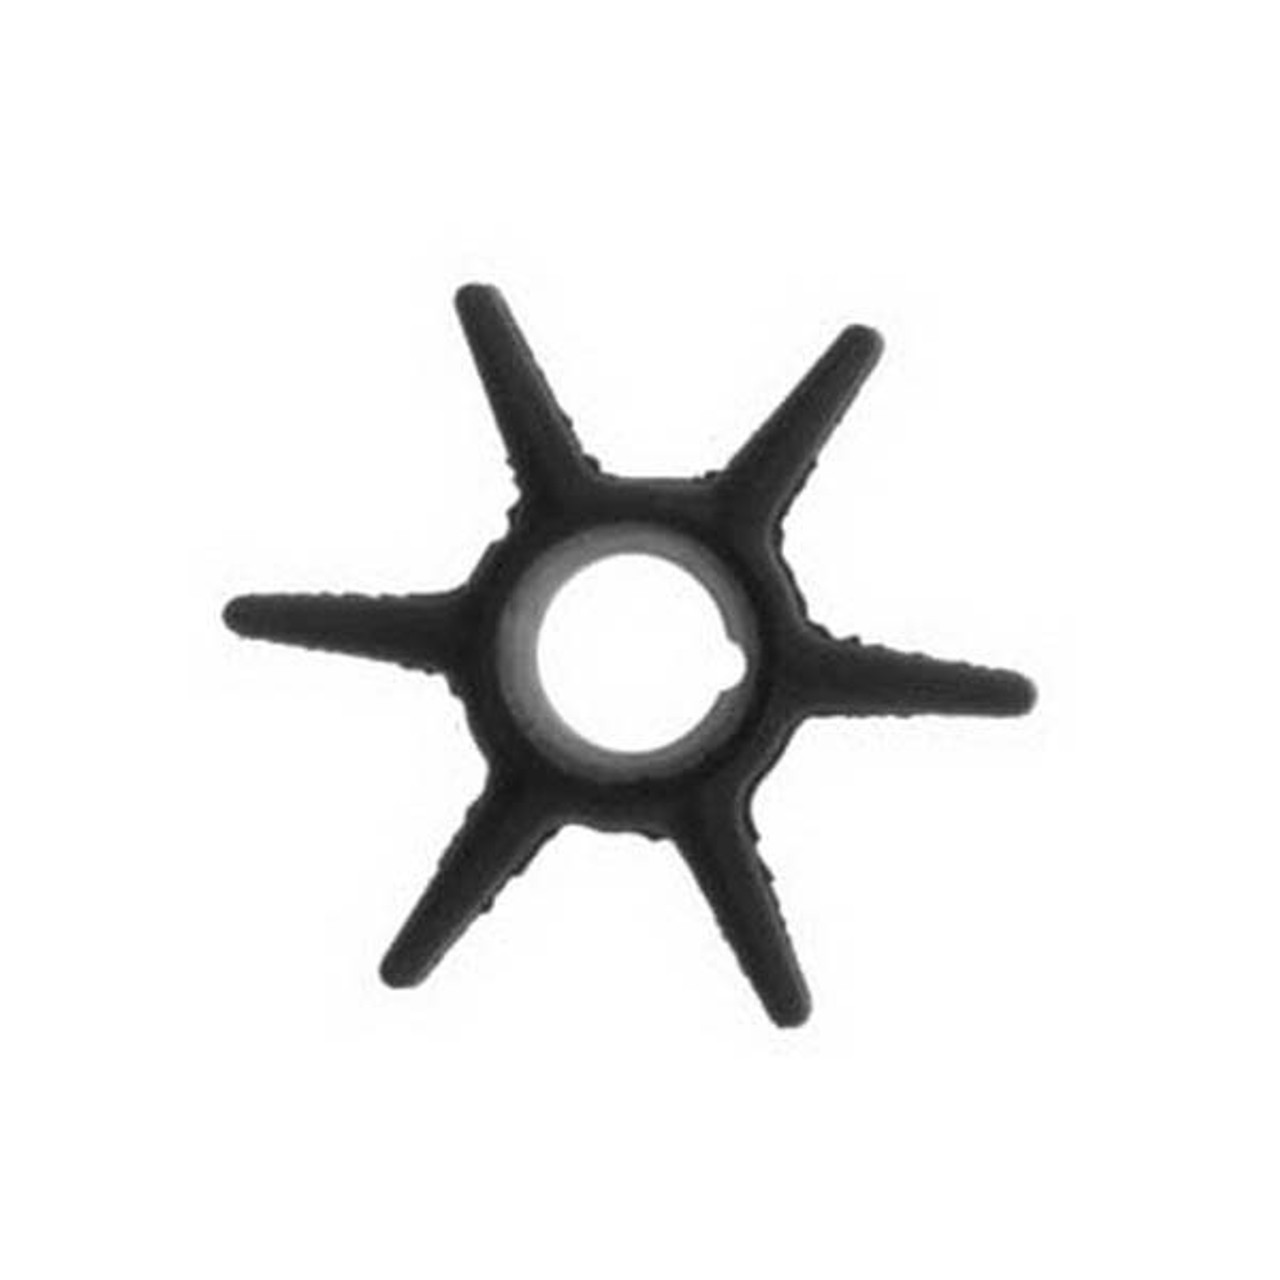 47-19453T 47-19453 Outboard Engine Water Pump Impeller For Mercury Boat Motor